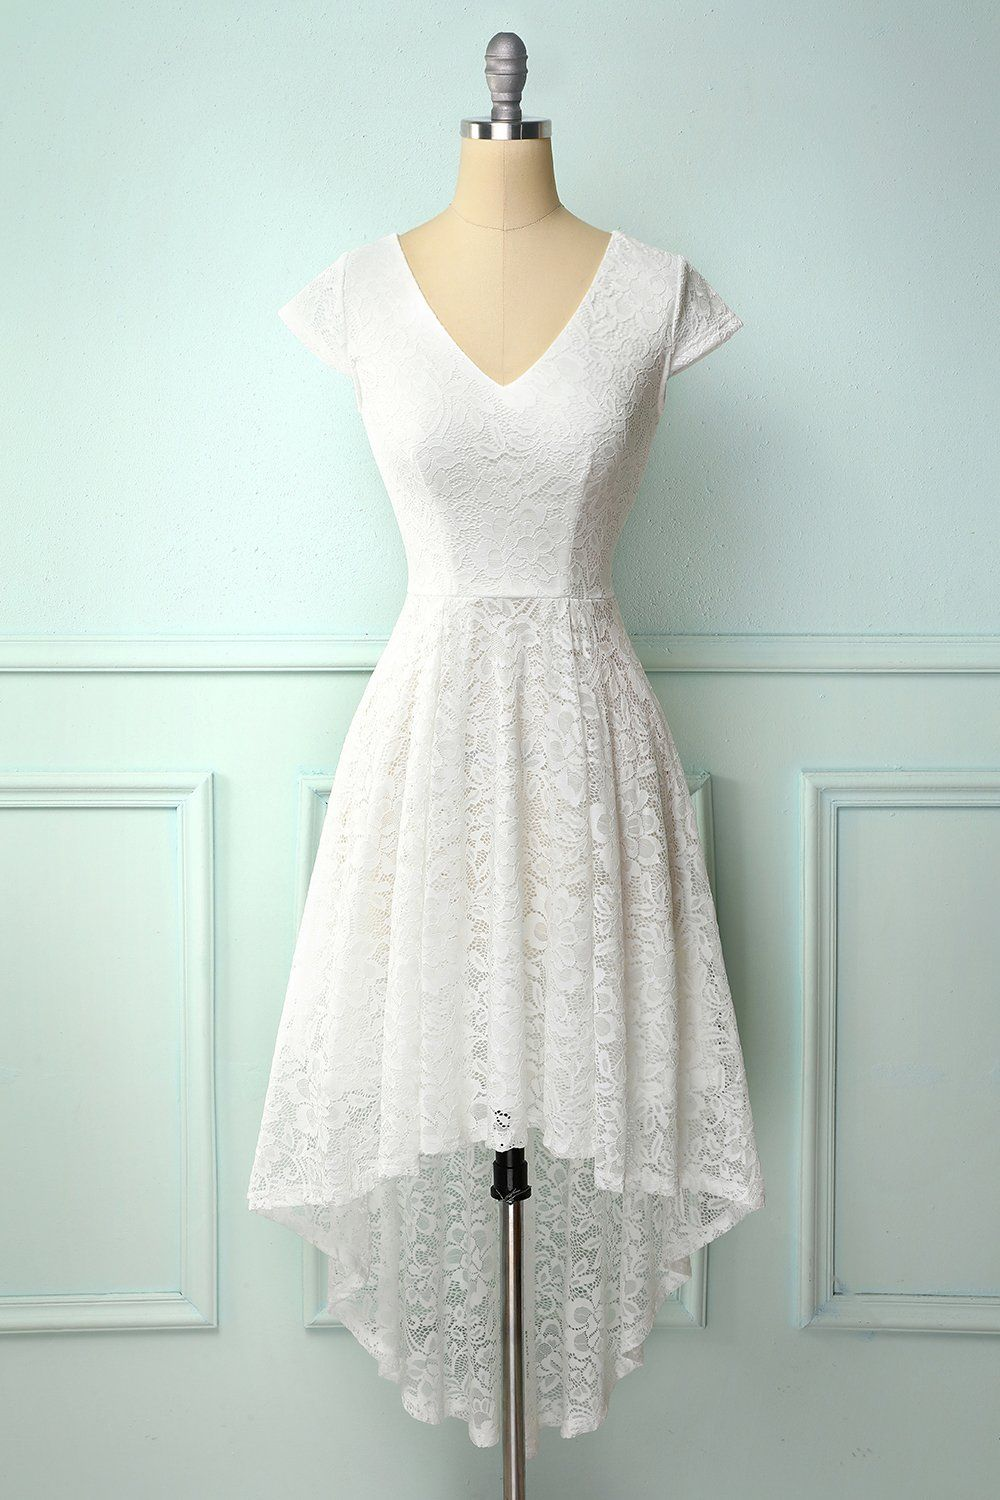 White High Low Lace Dress High Low Lace Dress Lace White Dress Lace Burgundy Dress [ 1500 x 1000 Pixel ]